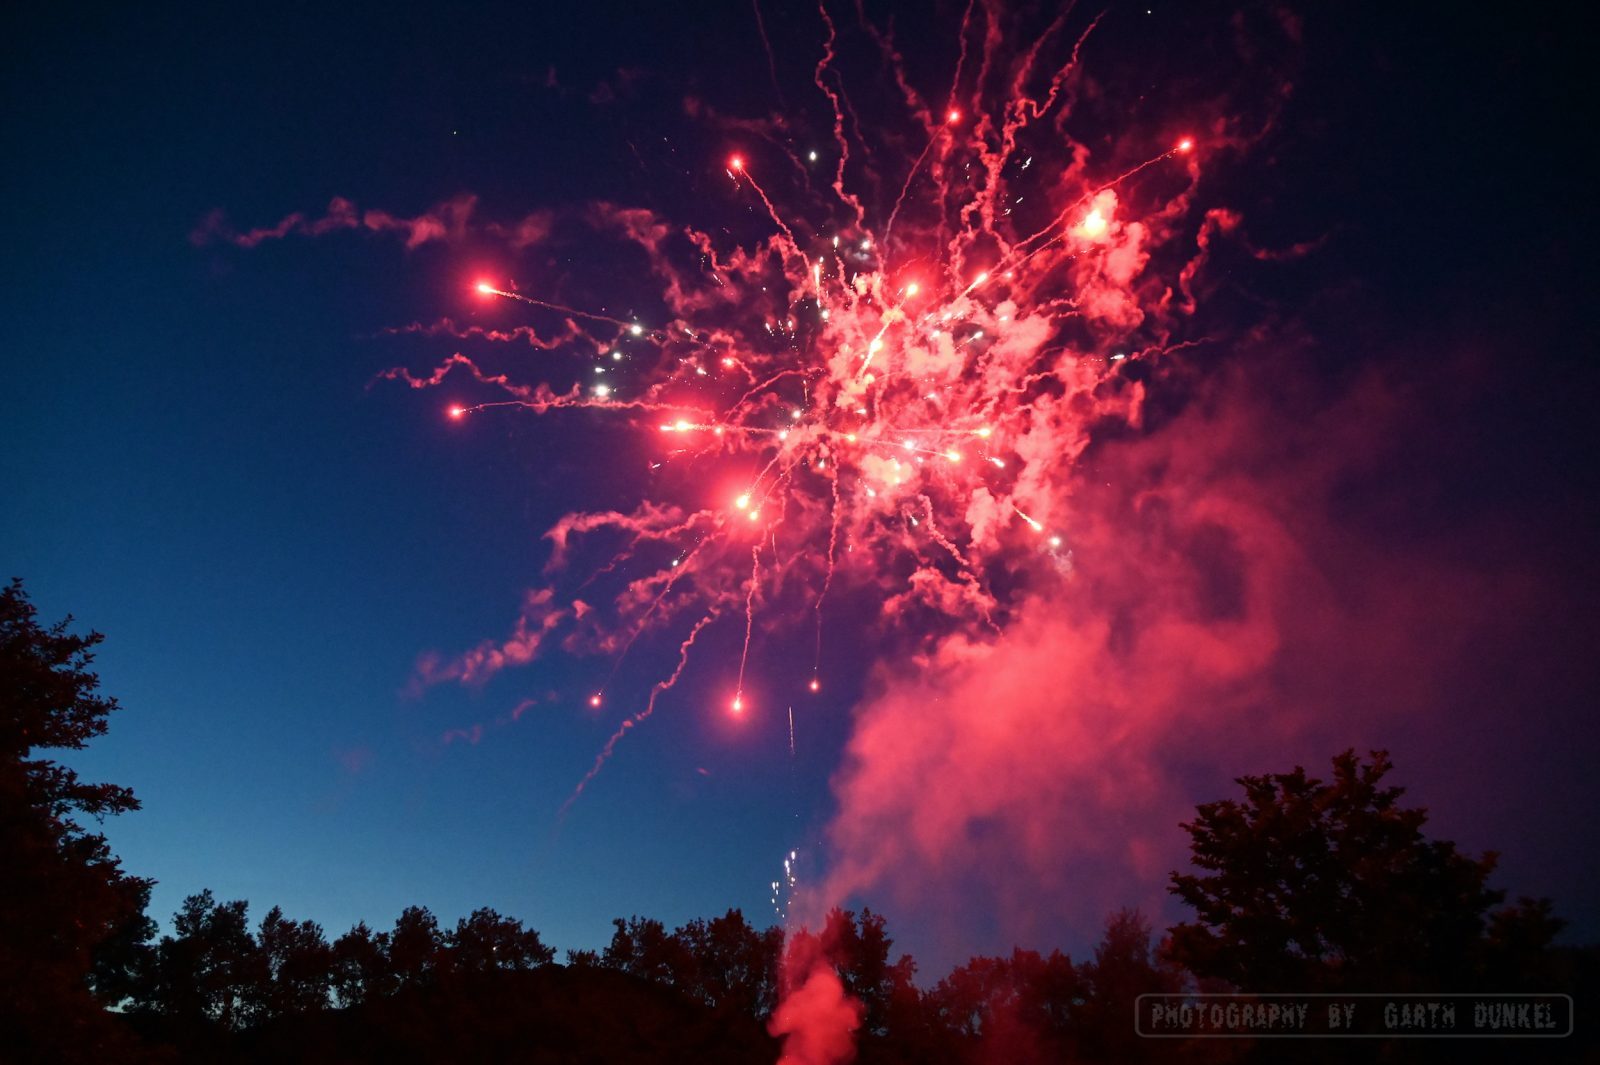 Fireworks in a Maxfield Parrish Painting (2)